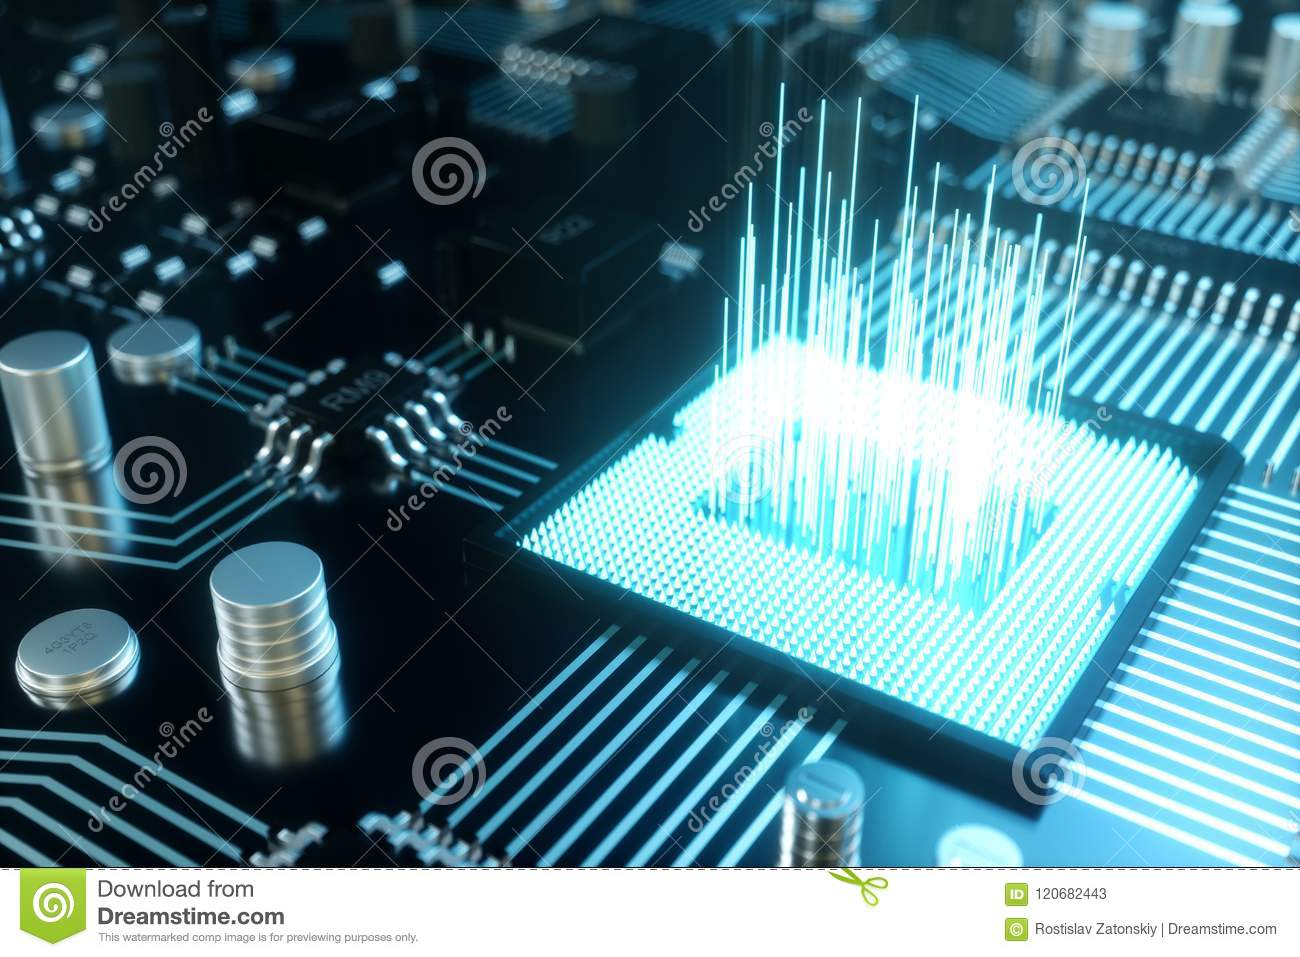 hight resolution of 3d illustration computer chip a processor on a printed circuit board the concept of